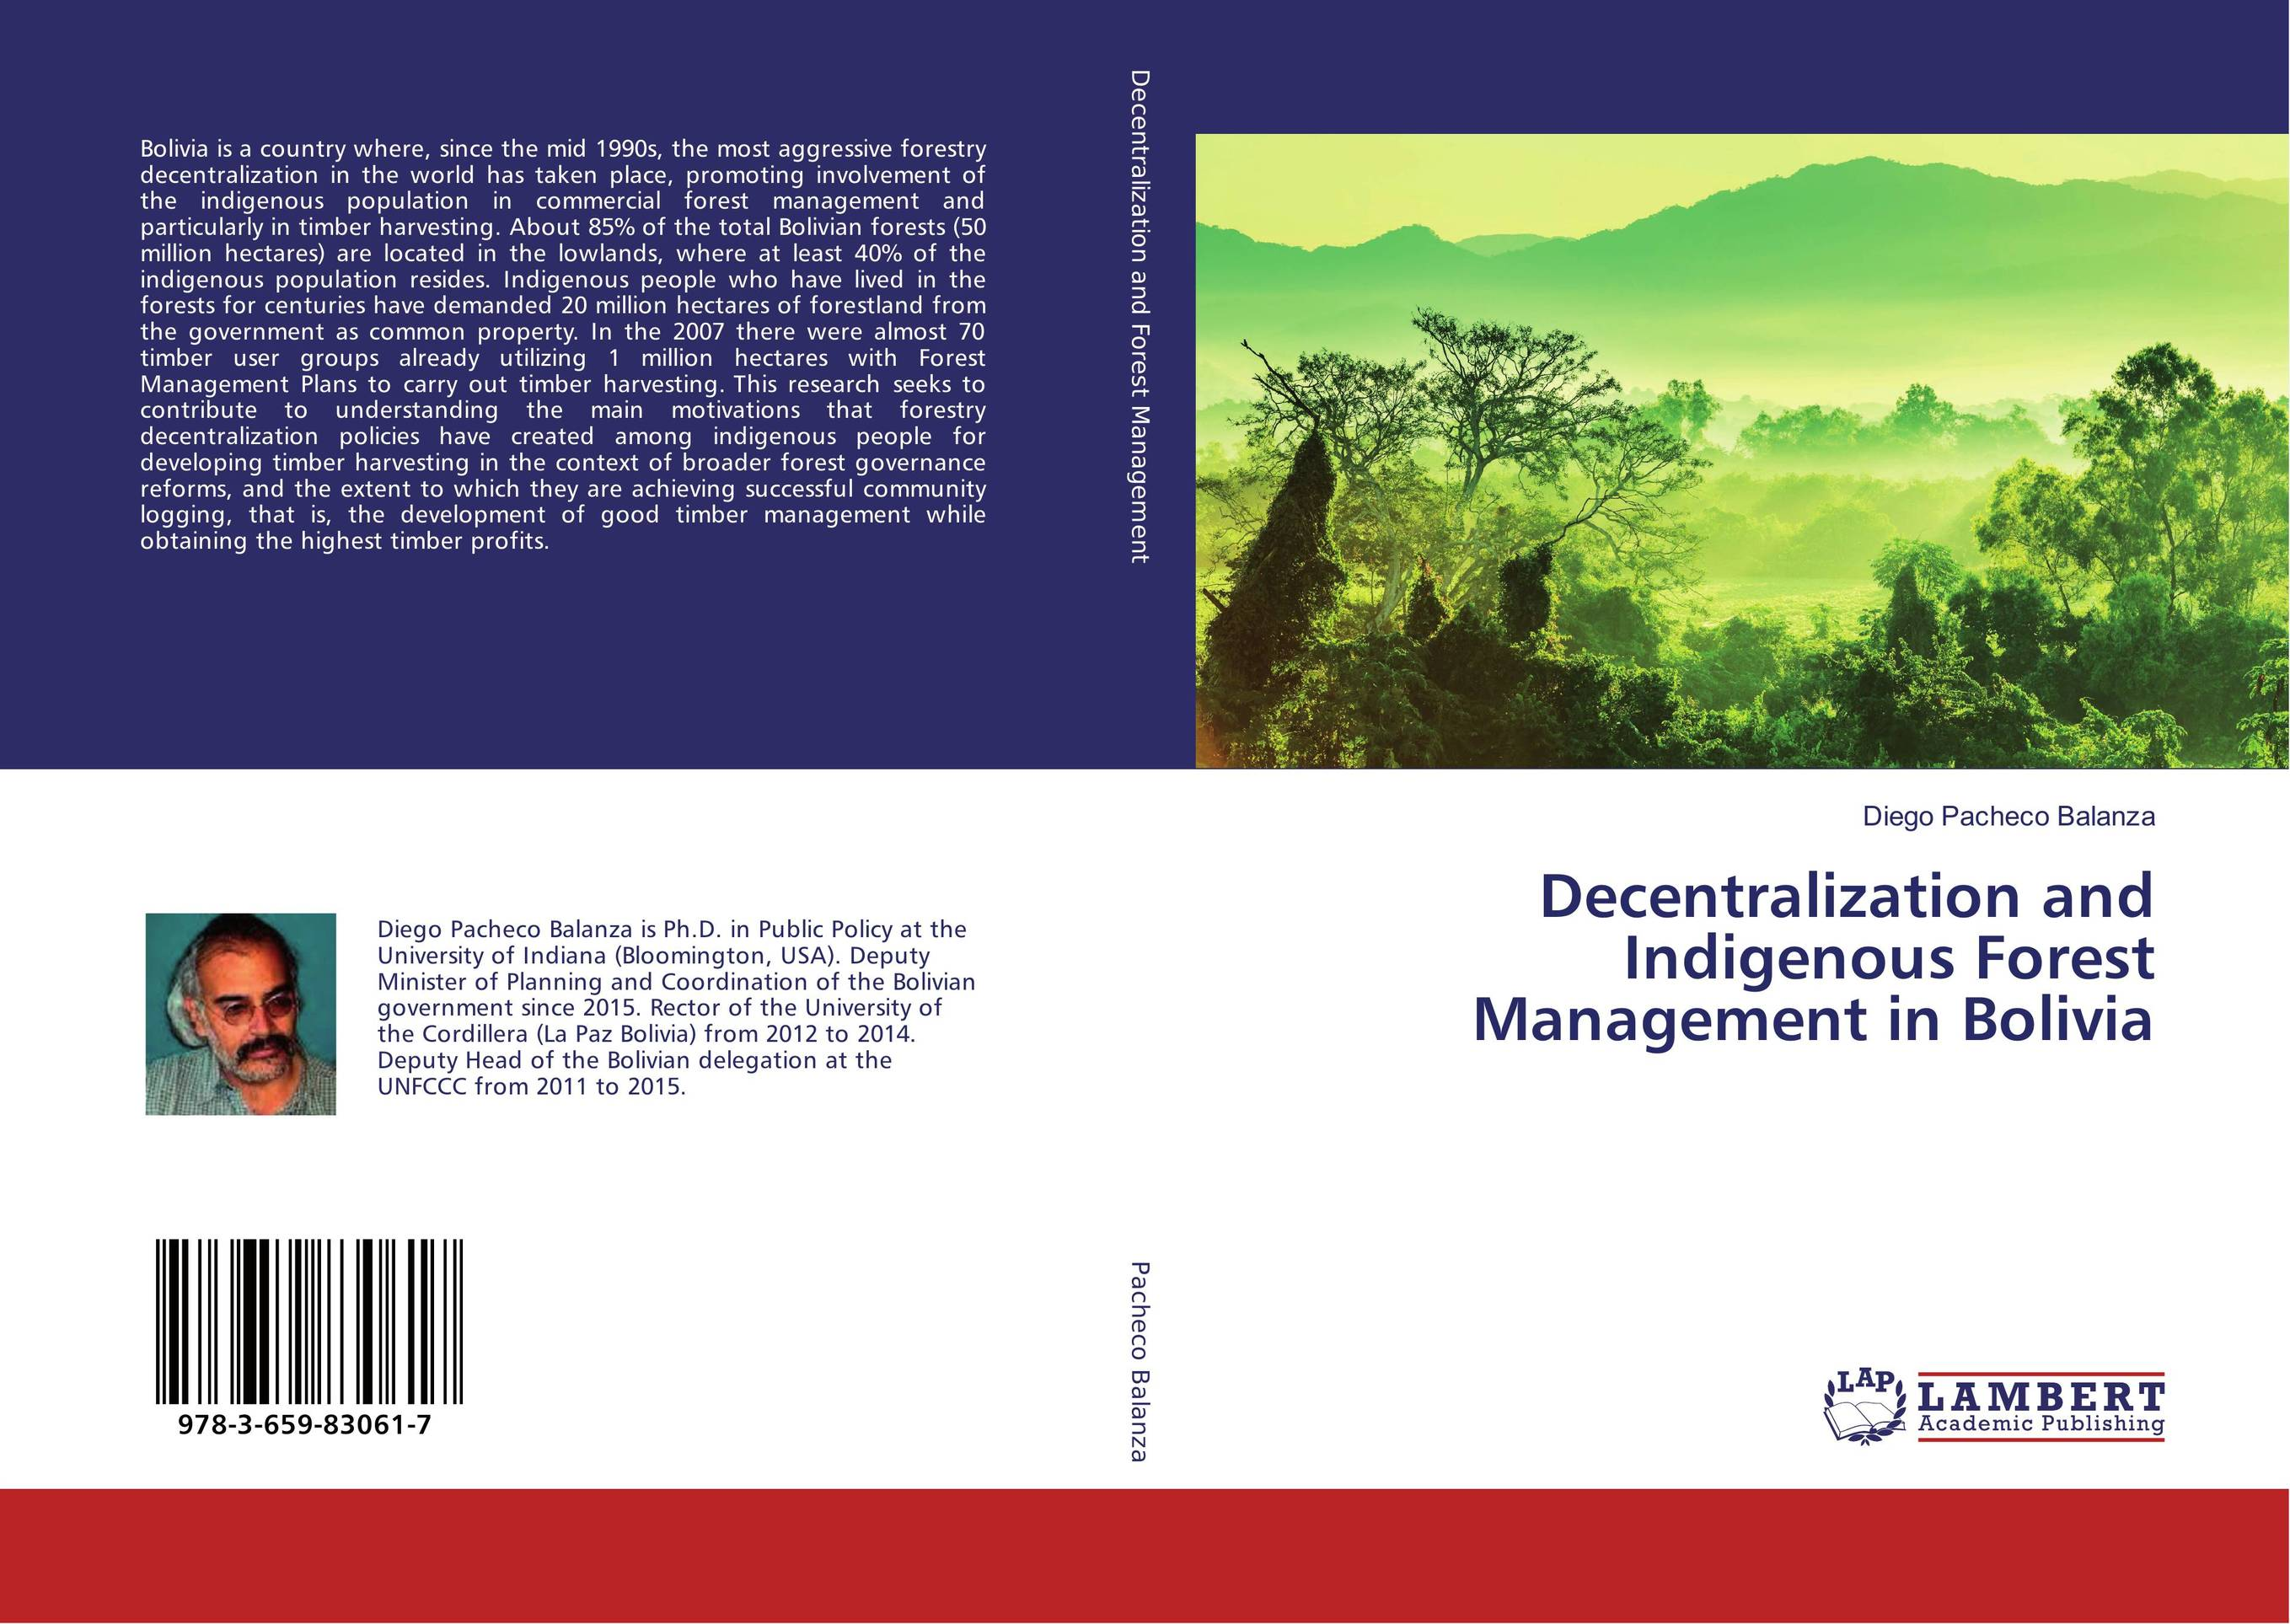 Decentralization and Indigenous Forest Management in Bolivia ahmed mohammed non timber forest products and food security